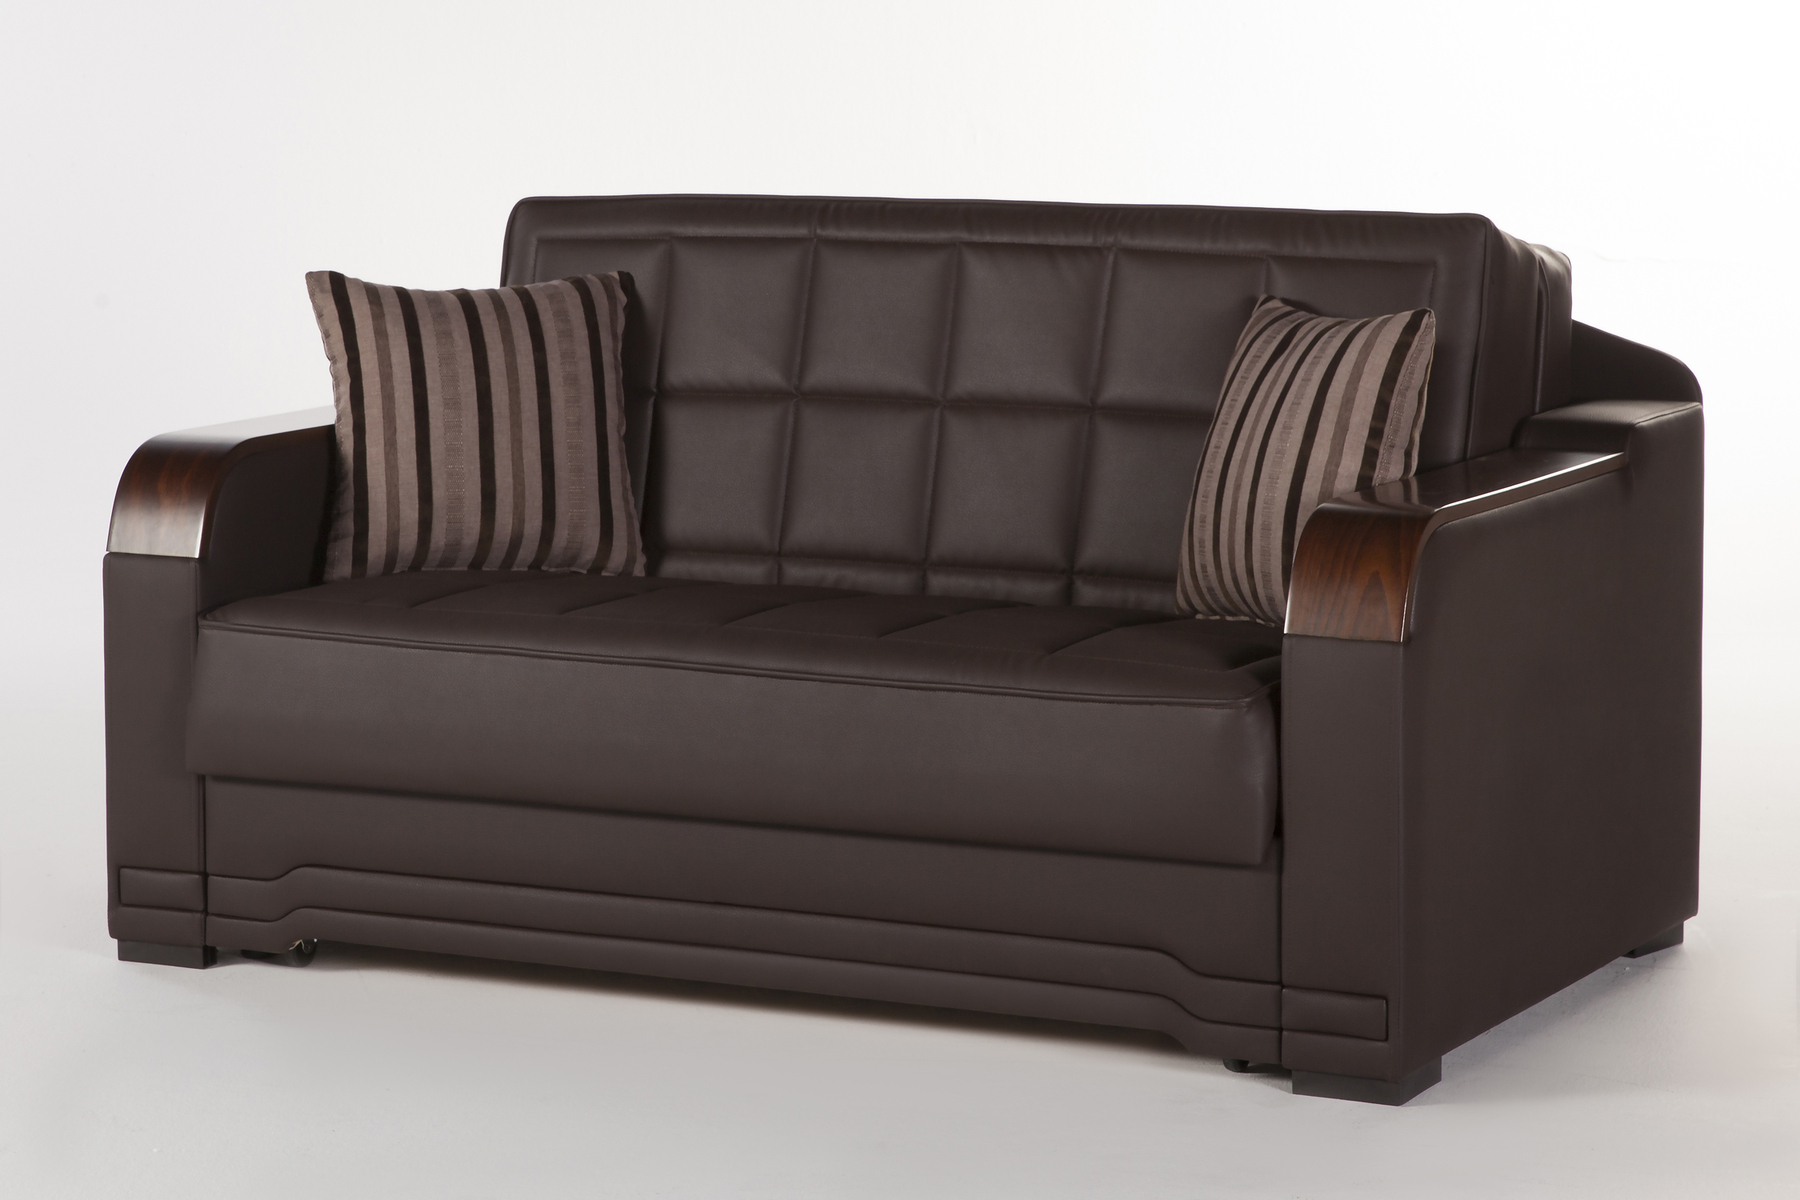 sofa beds on sale free shipping next to radiator willow dark brown loveseat sleeper by sunset